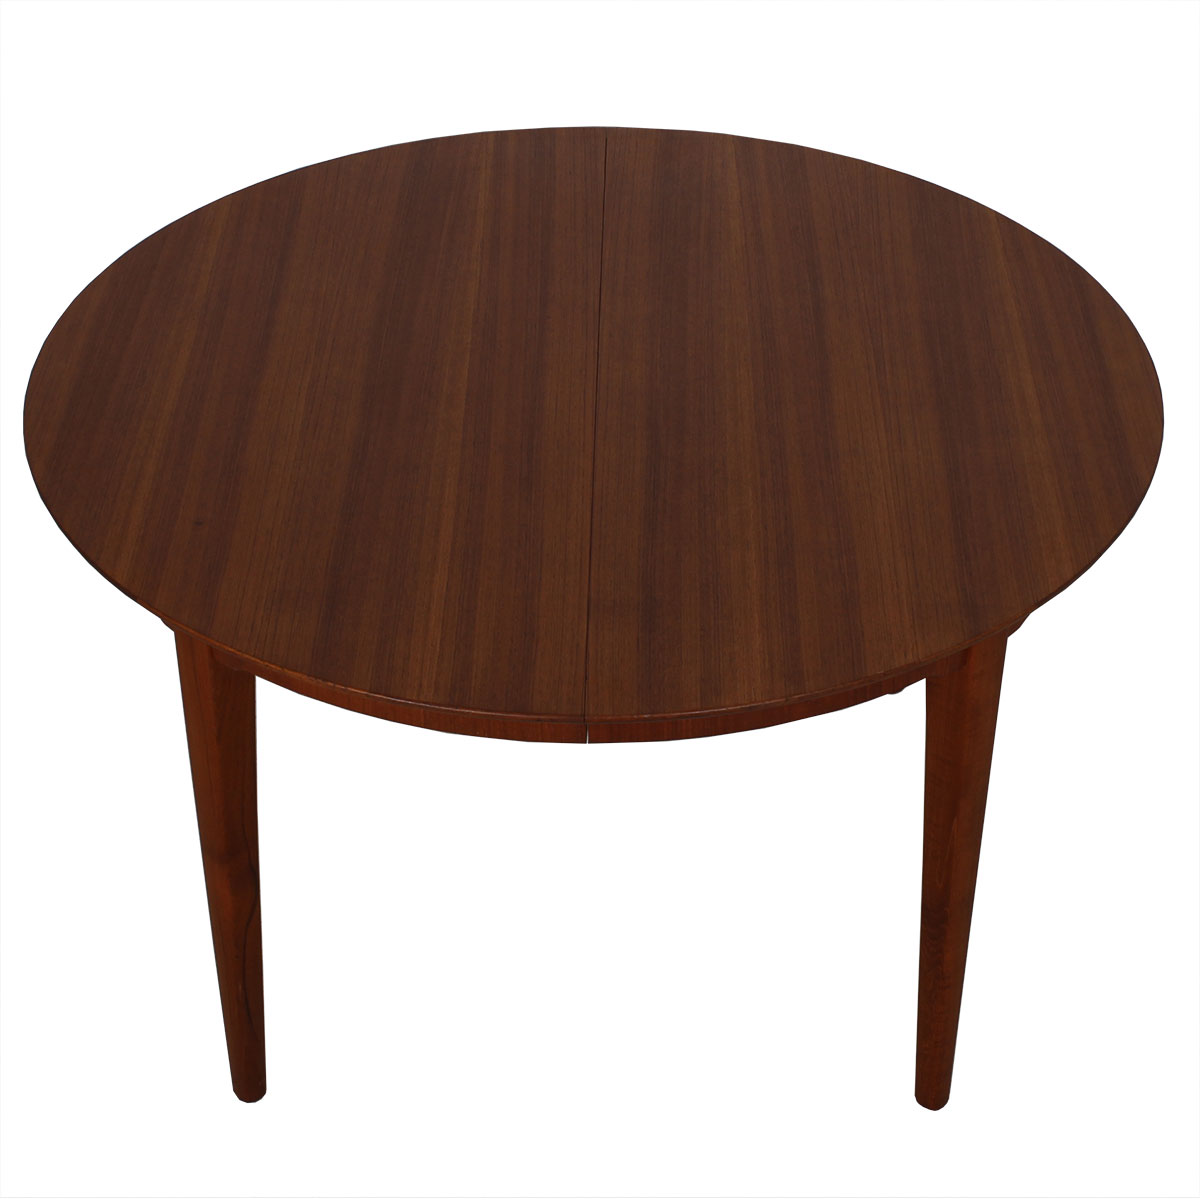 Super Expanding Round to Oval Danish Teak Dining Table w/ 4 Leaves!